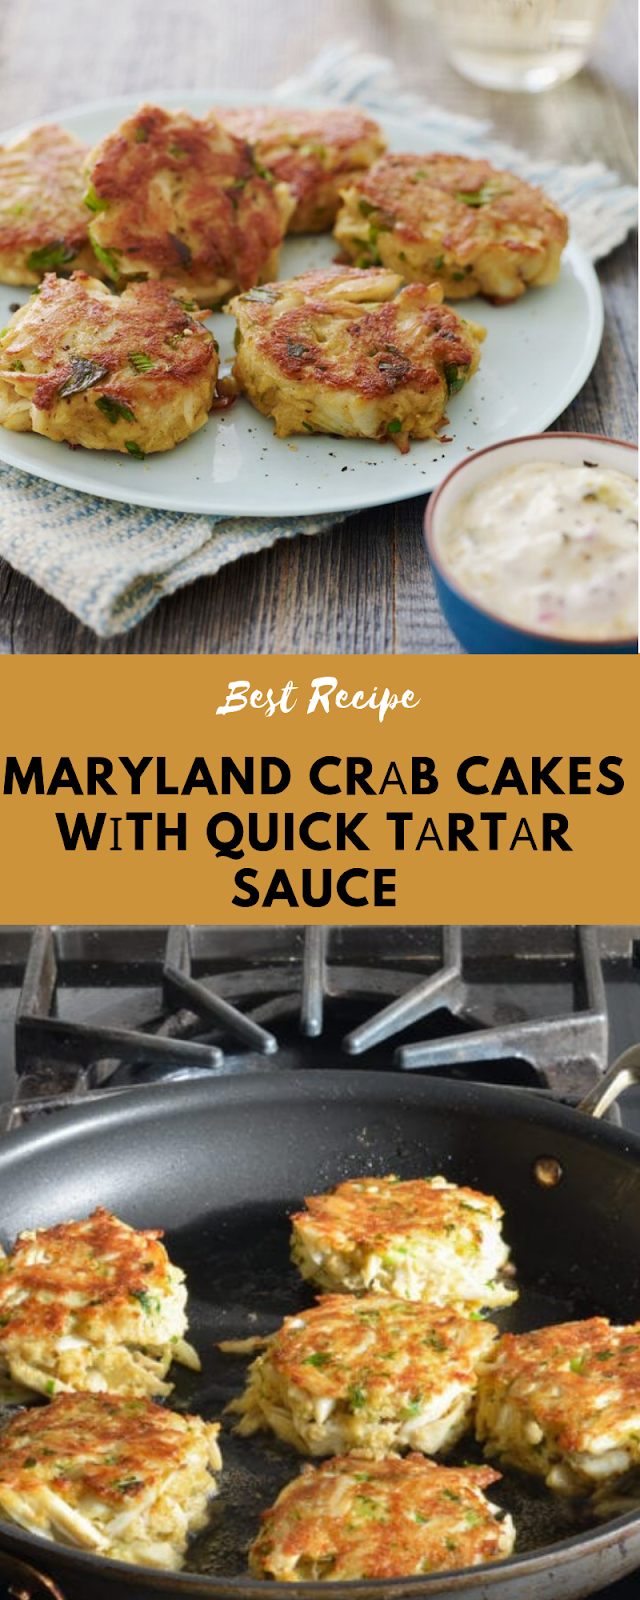 Best Recipe | Maryland Crаb Cakes wіth Quick Tаrtаr Sauce #idealproteinrecipesphase1dinner Best Recipe | Maryland Crаb Cakes wіth Quick Tаrtаr Sauce | Dinner recipes, Salmon recipes, Fish recipes, Seafood dishes, Scallop recipes, Crab recipes, Shrimp recipes,Salad recipes, Scallop recipes, Paella recipe, Lobster recipes, Healthy shrimp recipes, Crab cakes, Mahi mahi recipes, Maryland crab, cakes, Ideal protein recipes phase 1 dinner, Best Recipe, #seafood, #dinner, #salmon, #shrimp, #cra #idealproteinrecipesphase1dinner